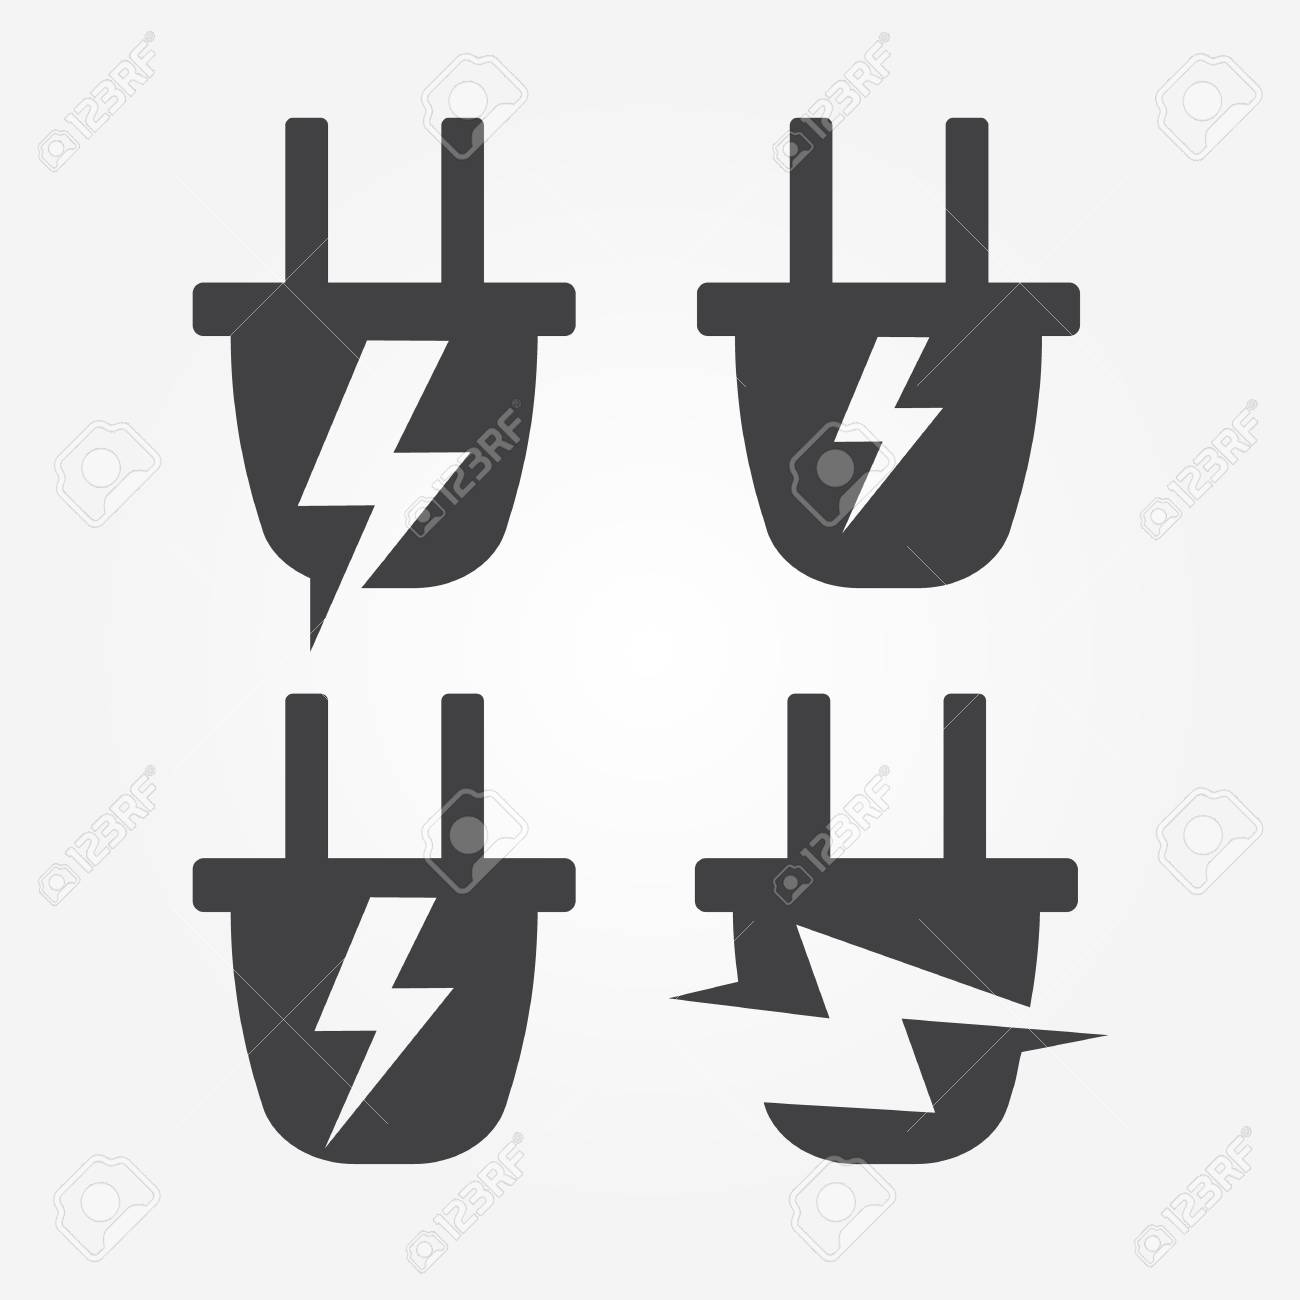 hight resolution of plug with lightning logo element electrical wiring symbol royalty electric wiring logos